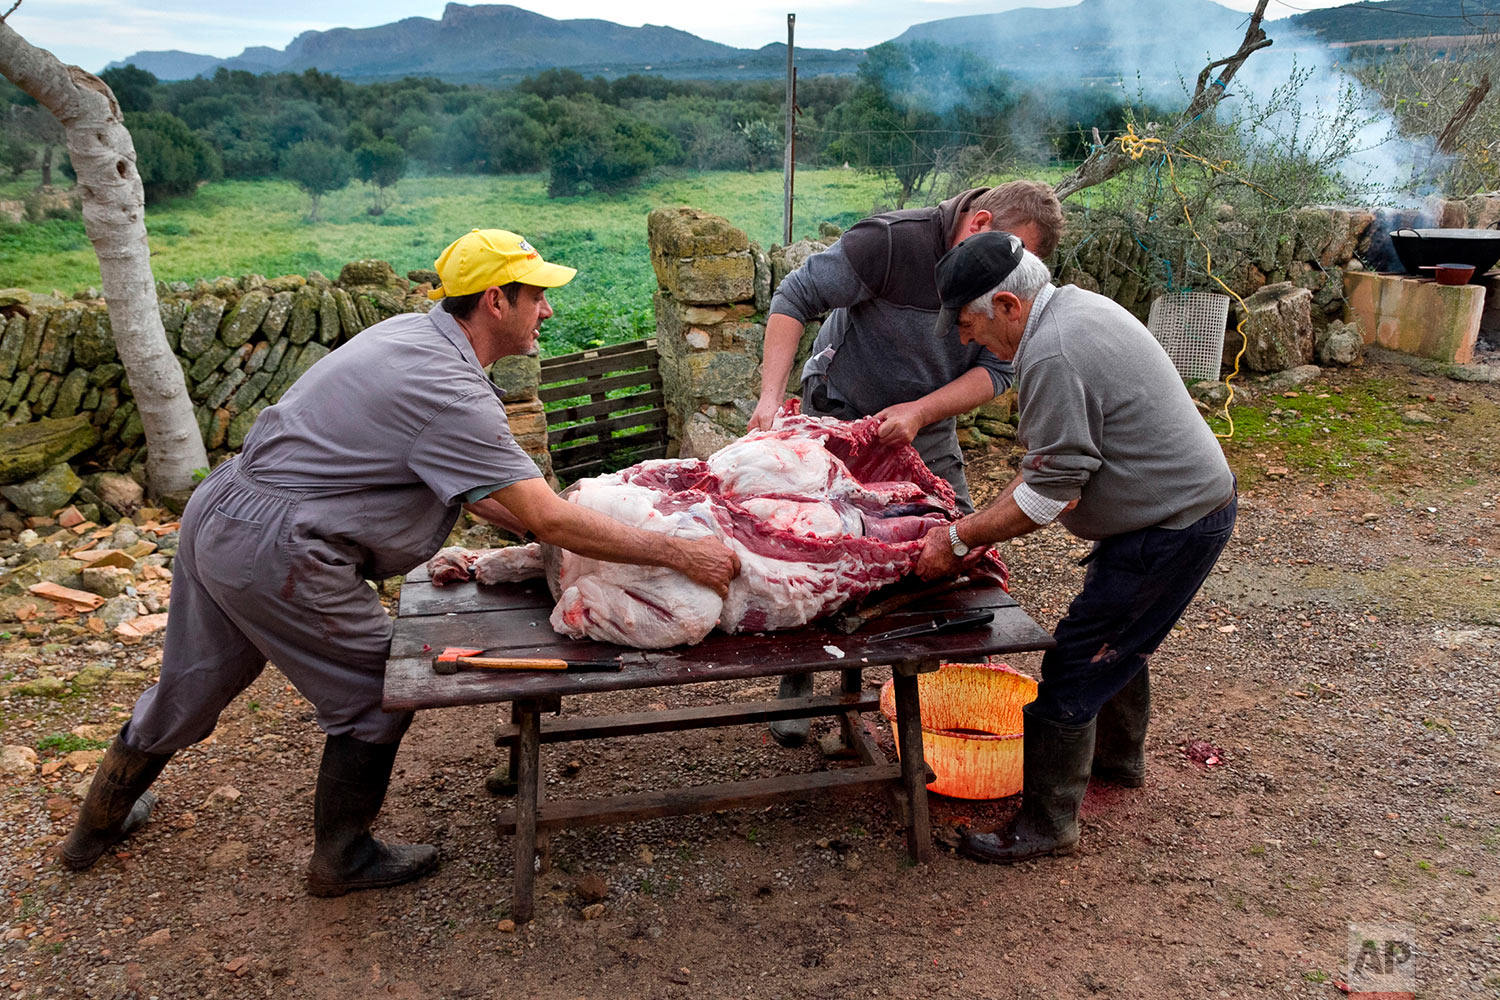 In this photo taken on Nov. 24, 2018, villagers dismember a pig during the annual pig slaughter near Petra, some 60 kilometres from Palma, the capital de Mallorca, Spain. (AP Photo/Francisco Ubilla)